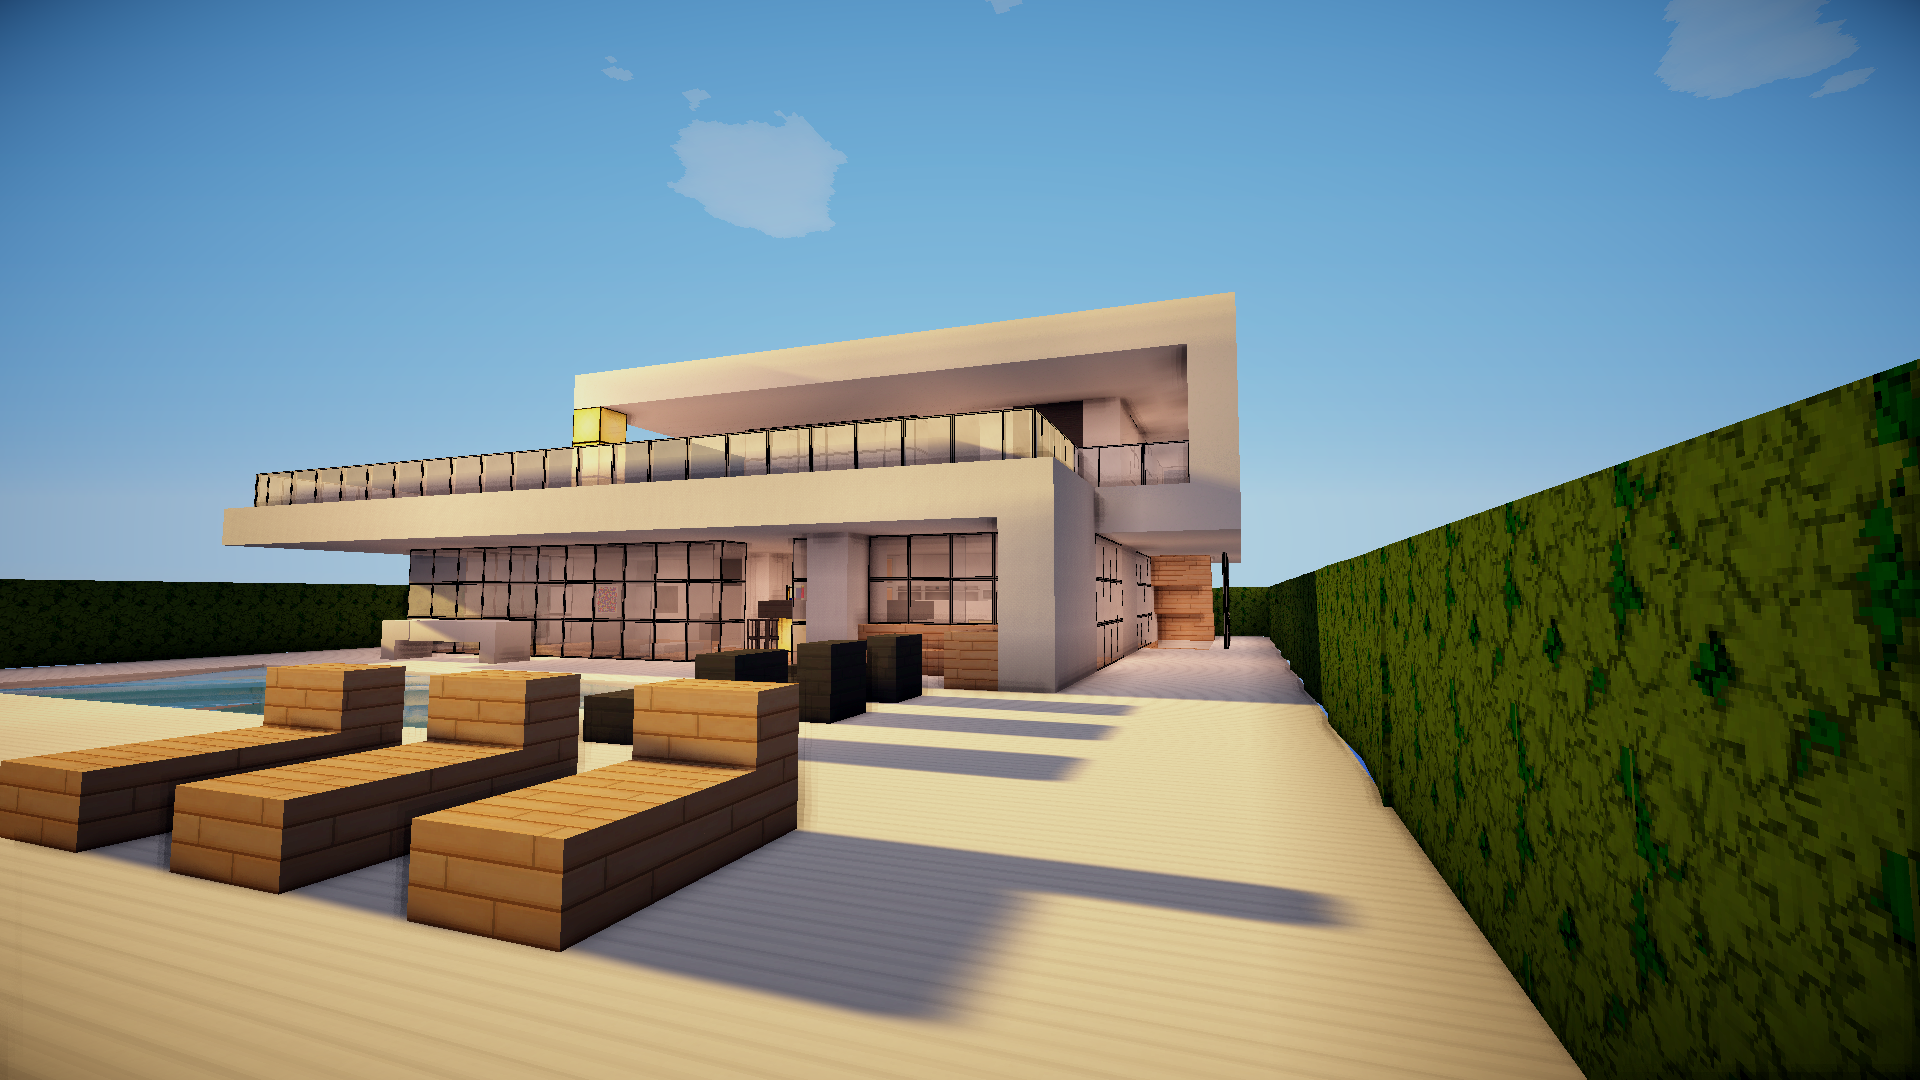 Modernes helles haus minecraft forum for Minecraft modernes haus 20x20